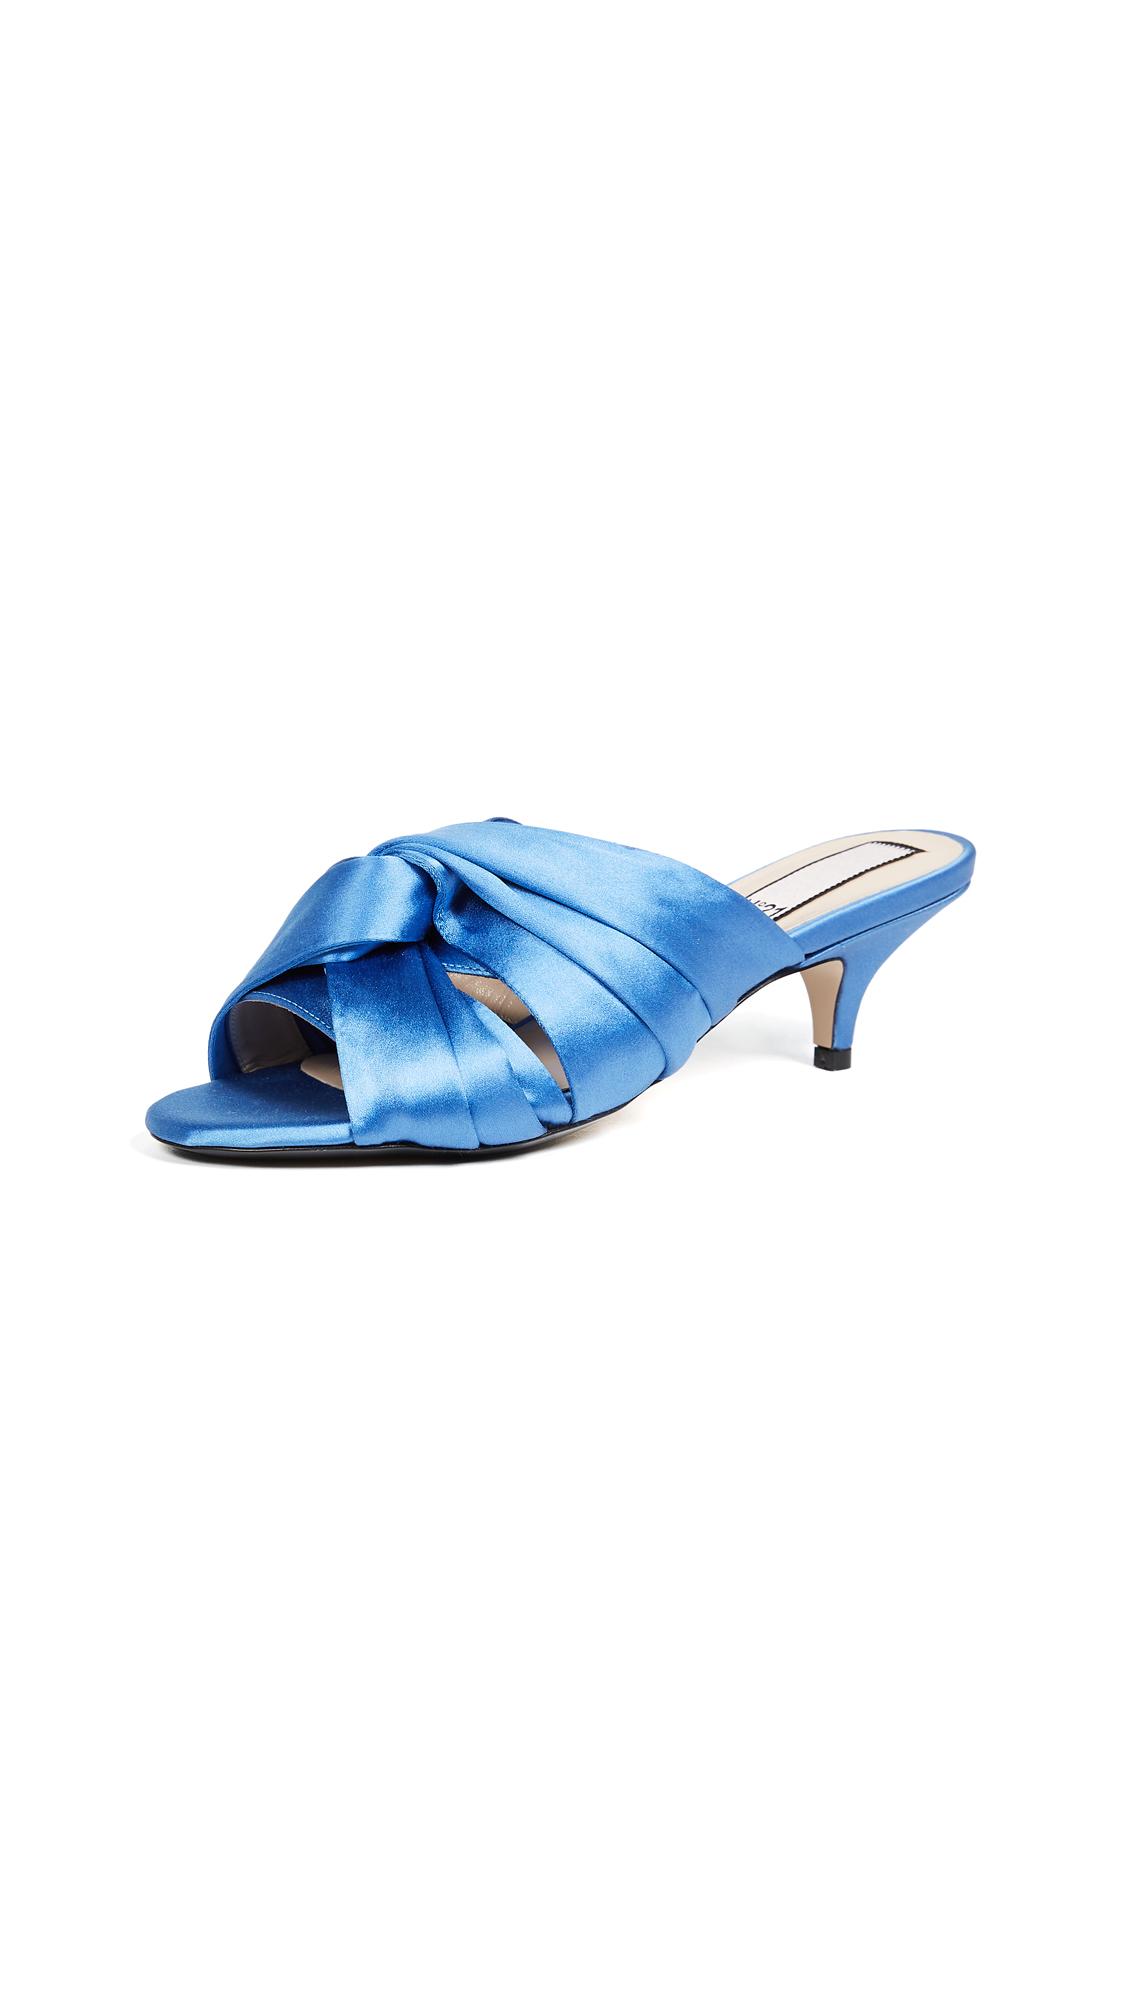 No. 21 Bow Sandal Pumps - Light Blue